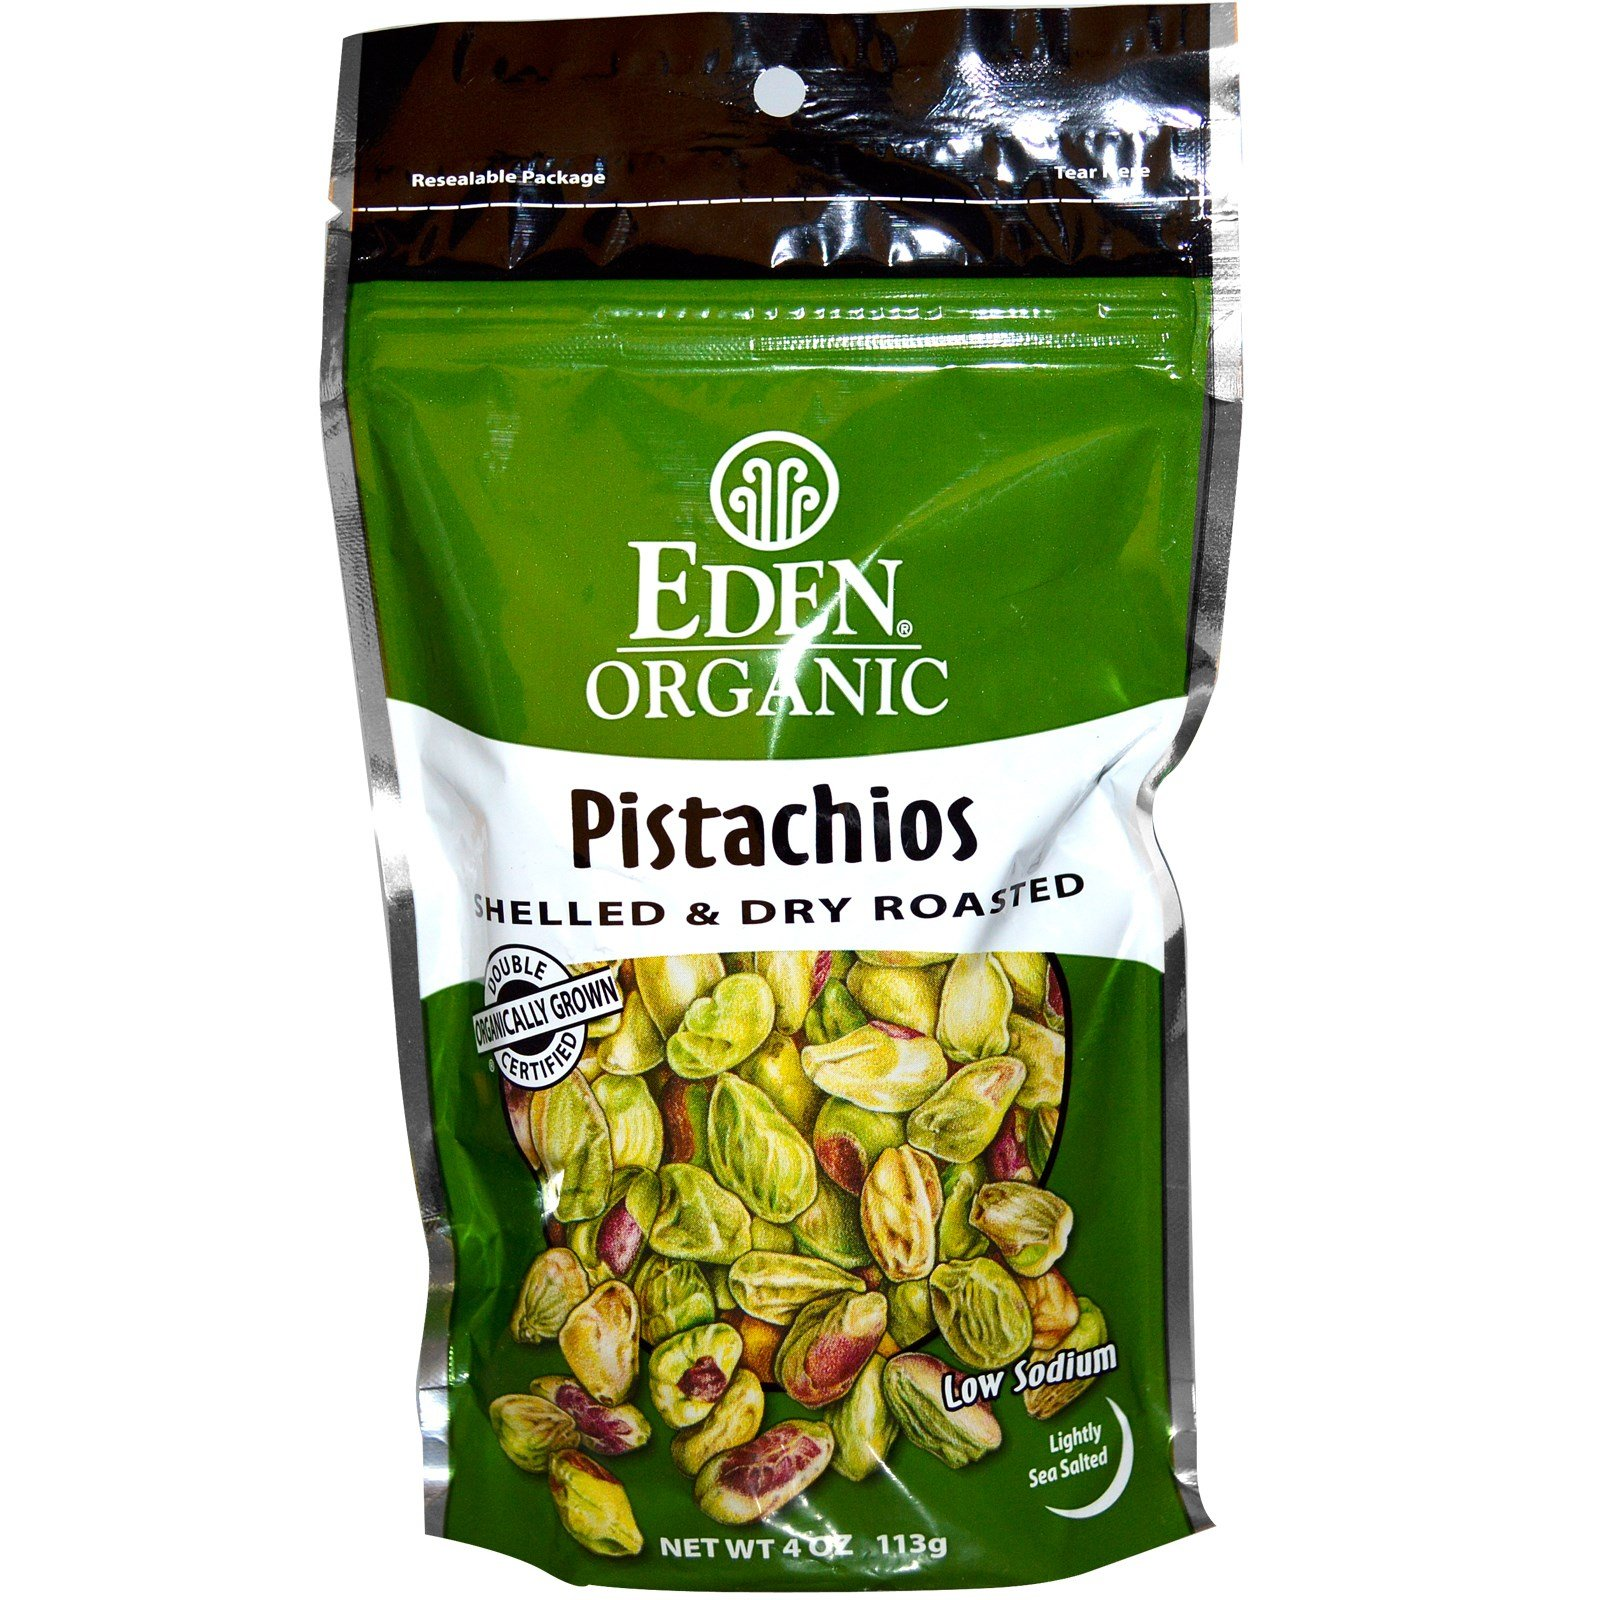 Eden Foods, Organic, Pistachios, Shelled & Dry Roasted, Lightly Sea Salted, 4 oz (113 g) - 2pc